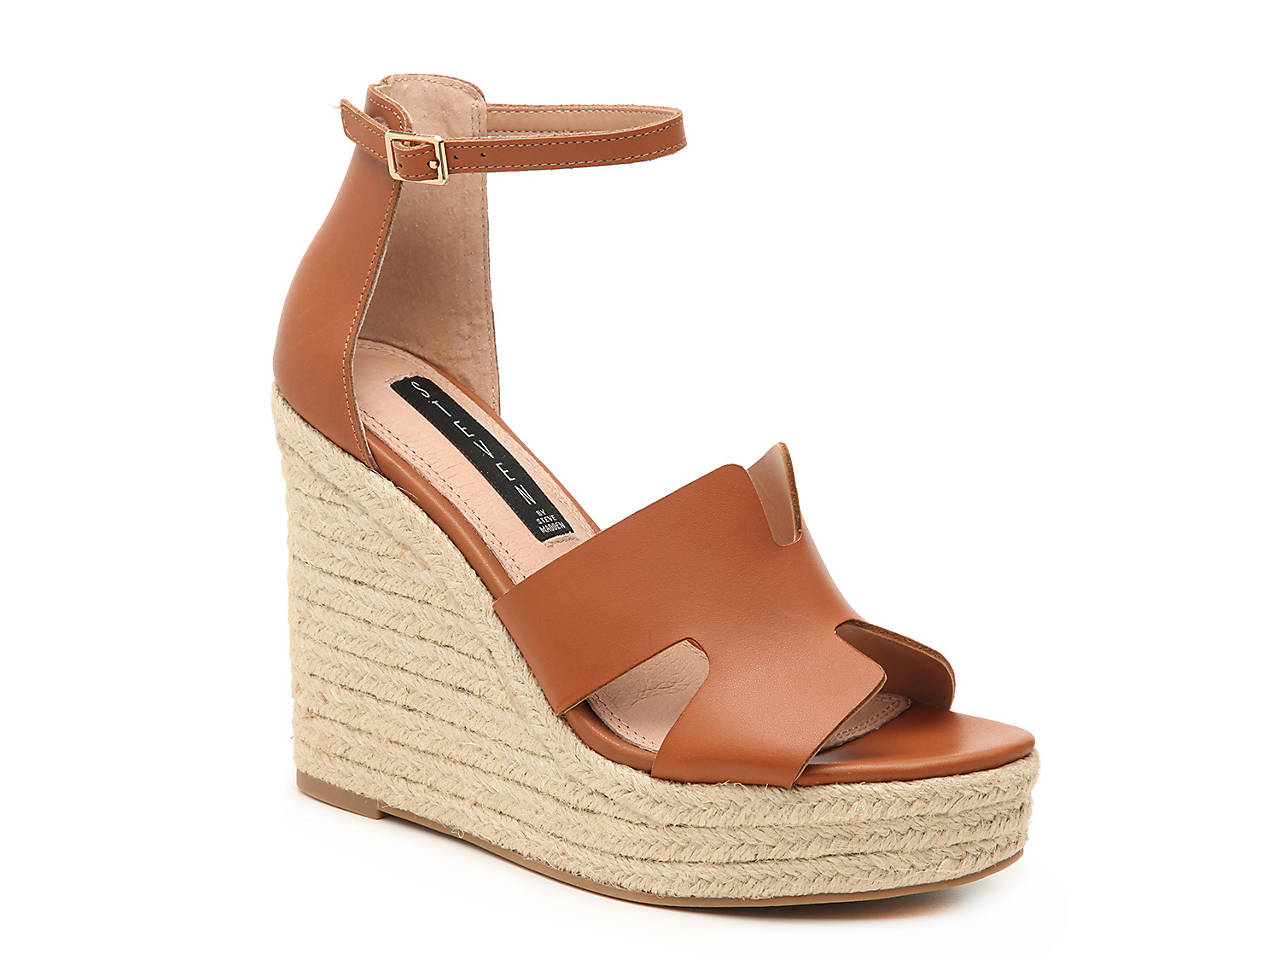 7c8f23e7ef2 Steven by Steve Madden Sirena Espadrille Wedge Sandal Women s Shoes ...